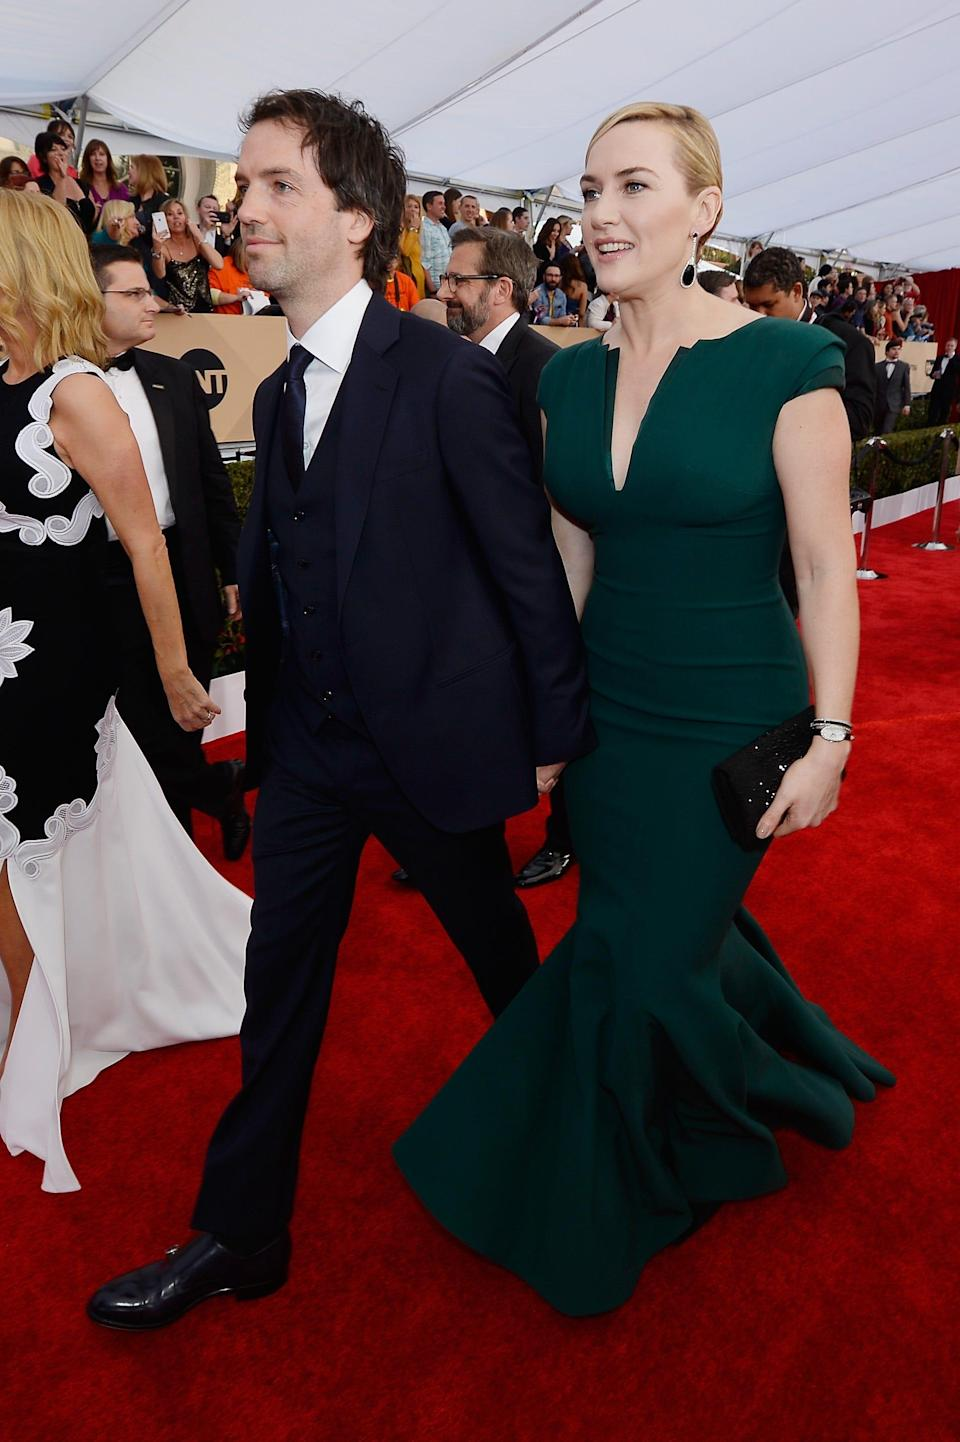 Kate Winslet, right, and third husband Edward Abel Smith (formerly known as Ned Rocknroll) walk the Screen Actors Guild Awards red carpet in 2016. The couple married in 2012.